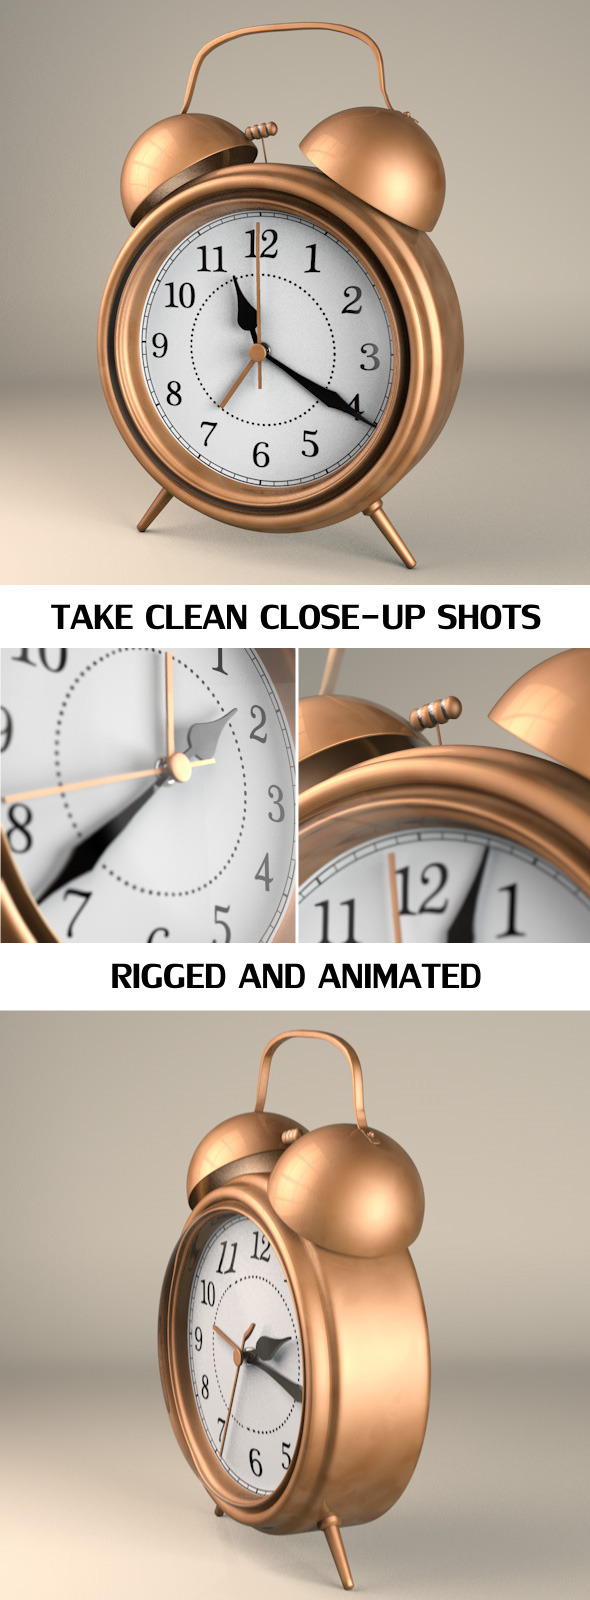 Rigged and Animated Vintage Alarm Clock